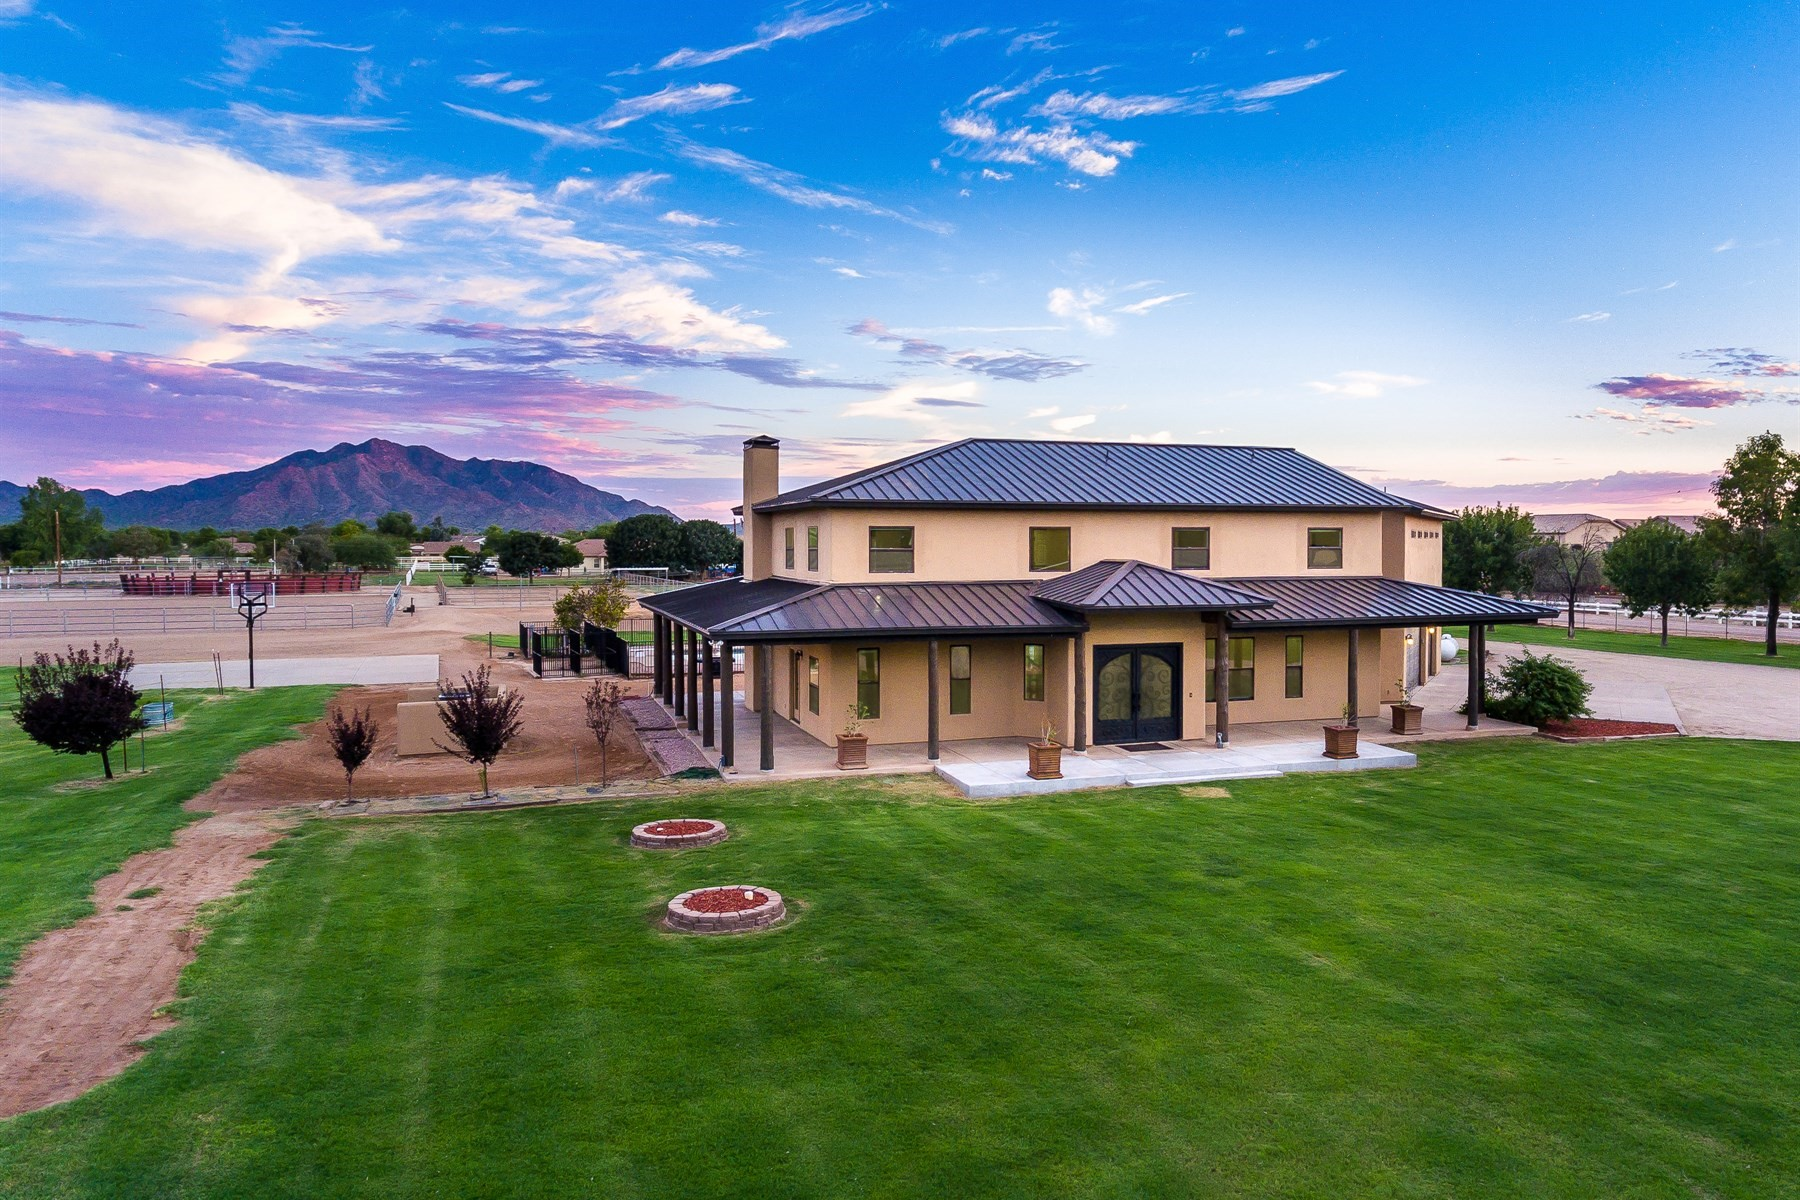 Single Family Home for Sale at Gorgeous Equestrian Estate horse property 3637 E Brooks Farm Rd, Gilbert, Arizona, 85298 United States